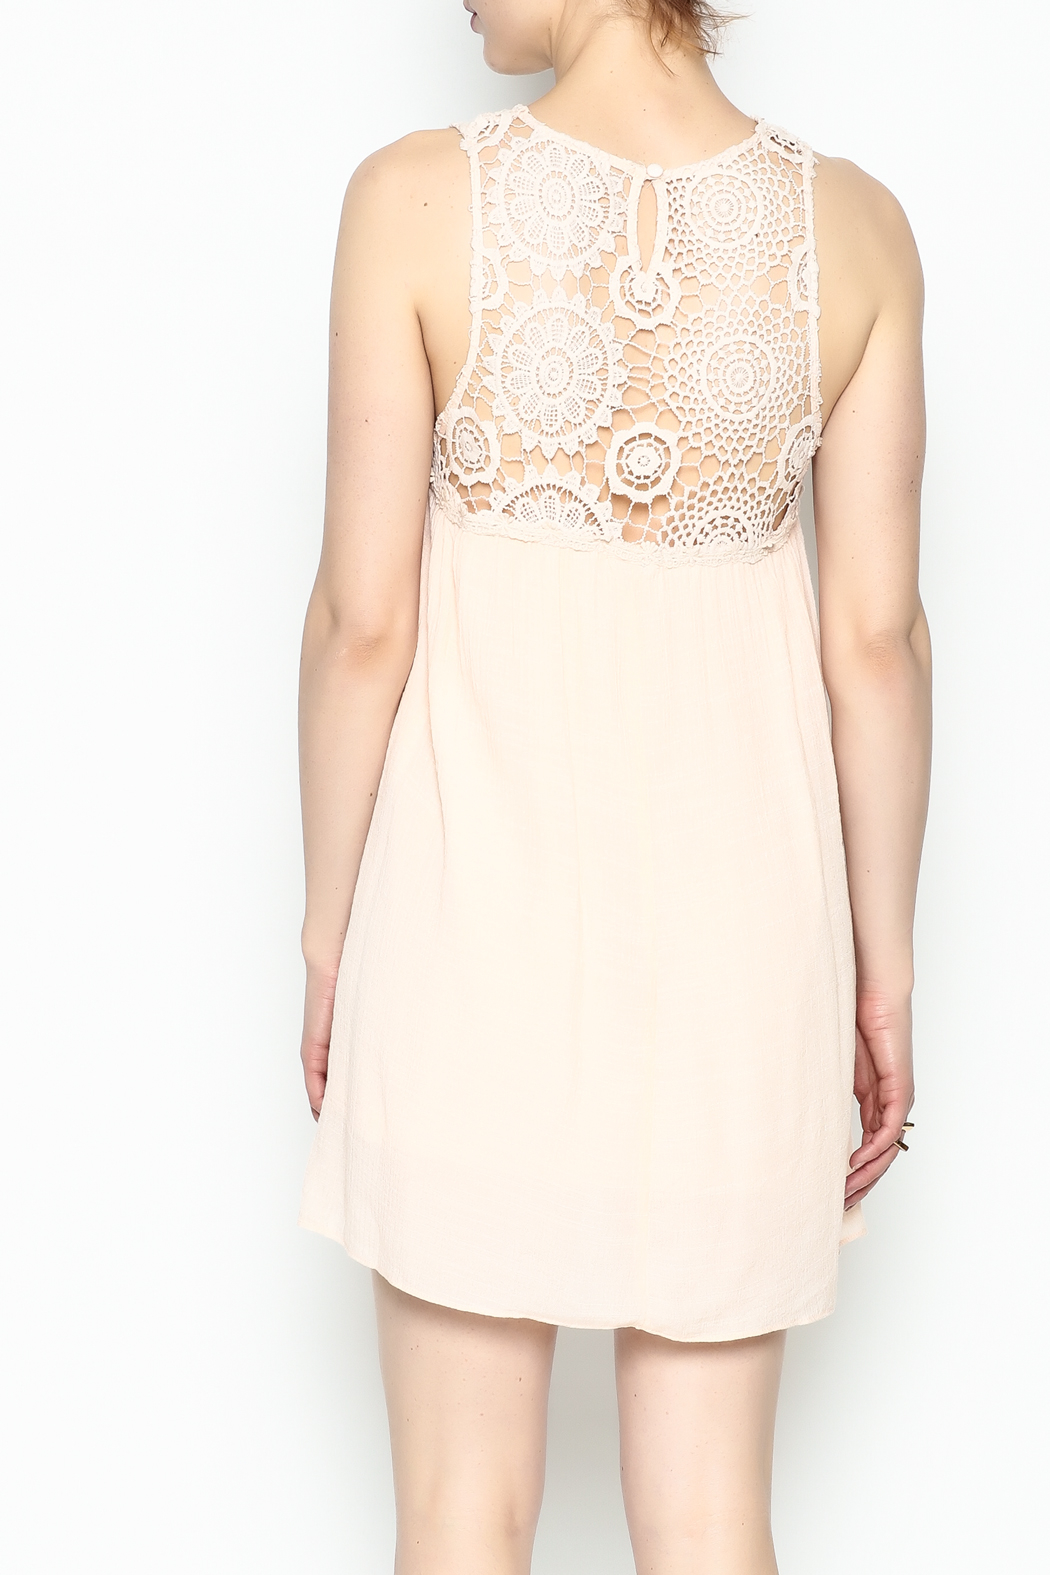 Poetry Lace Summer Dress - Back Cropped Image